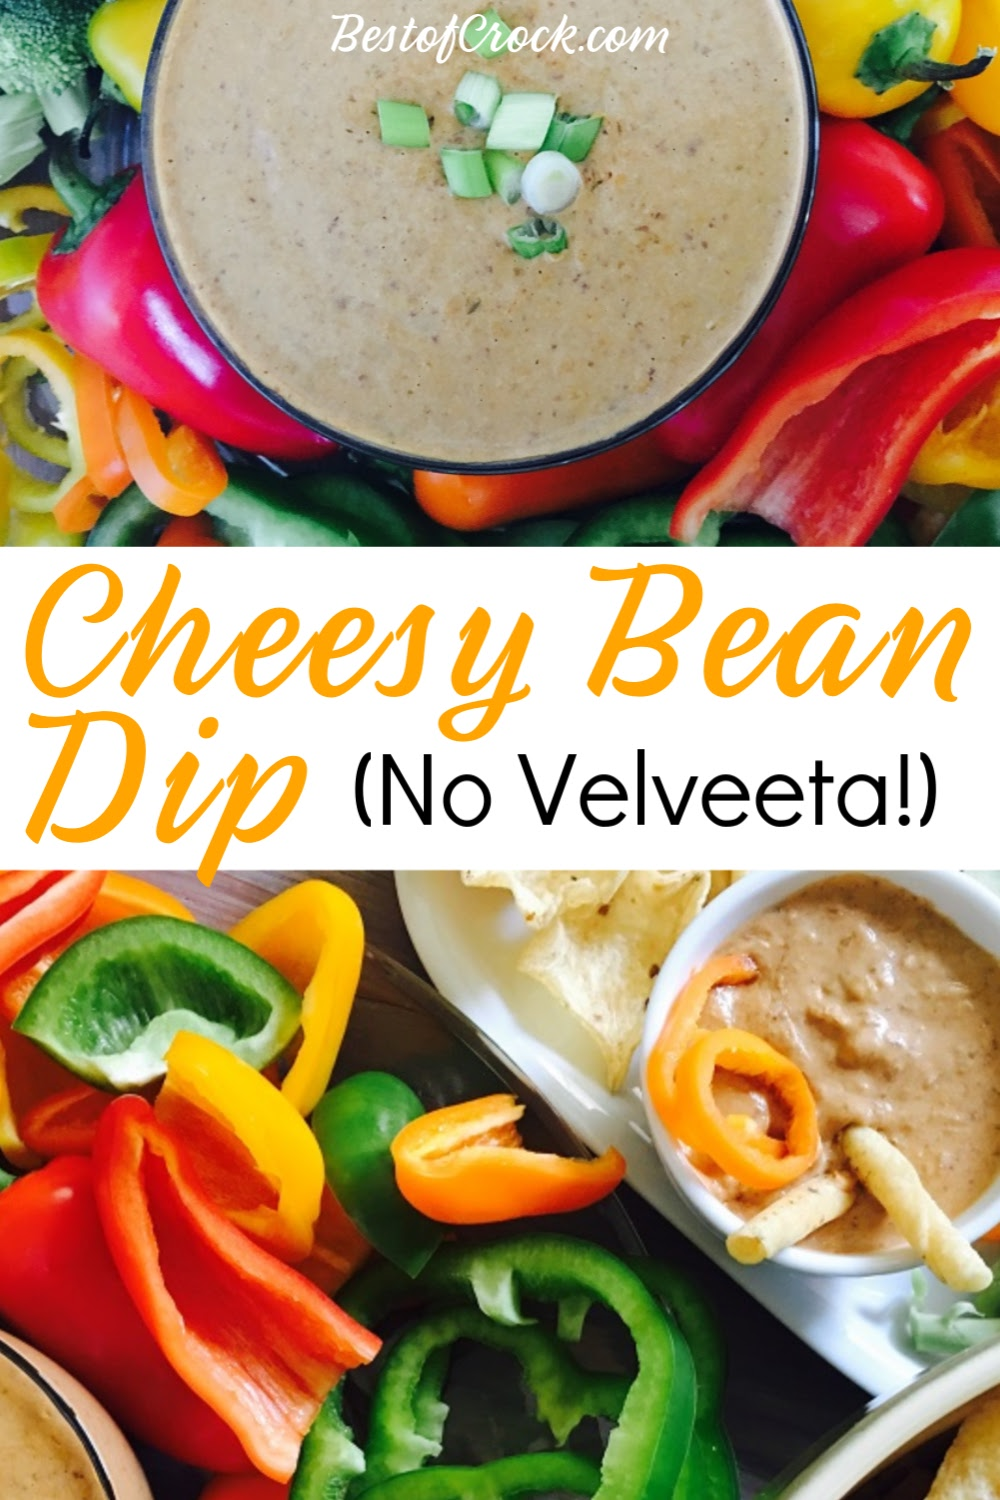 Crockpot Bean Dip with Beans is the perfect party recipe! This dip can be used with chips, crackers, or fresh vegetables for an easy side dish. Party Dips and Appetizers | Homemade Dips for Chips | Party Food Ideas | Recipes with Black Beans | Party Planning | Side Dish Recipes #healthy #recipes via @bestofcrock